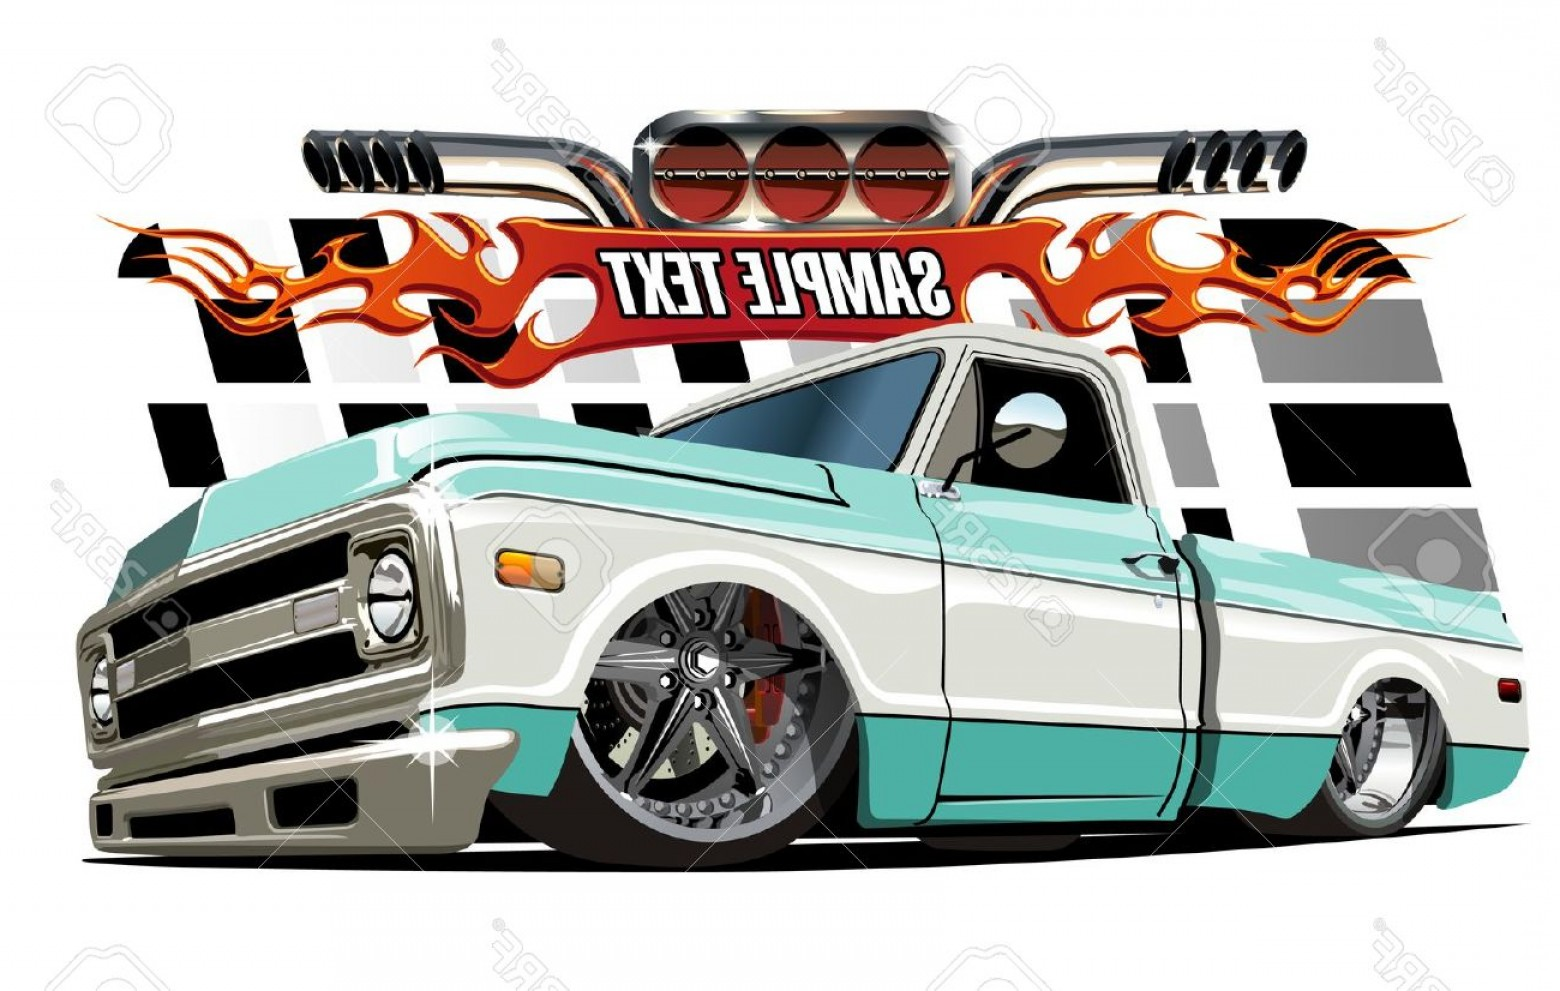 Lowrider Vector: Photostock Vector Vector Cartoon Lowrider Available Separated By Groups And Layers With Transparency Effects For One C